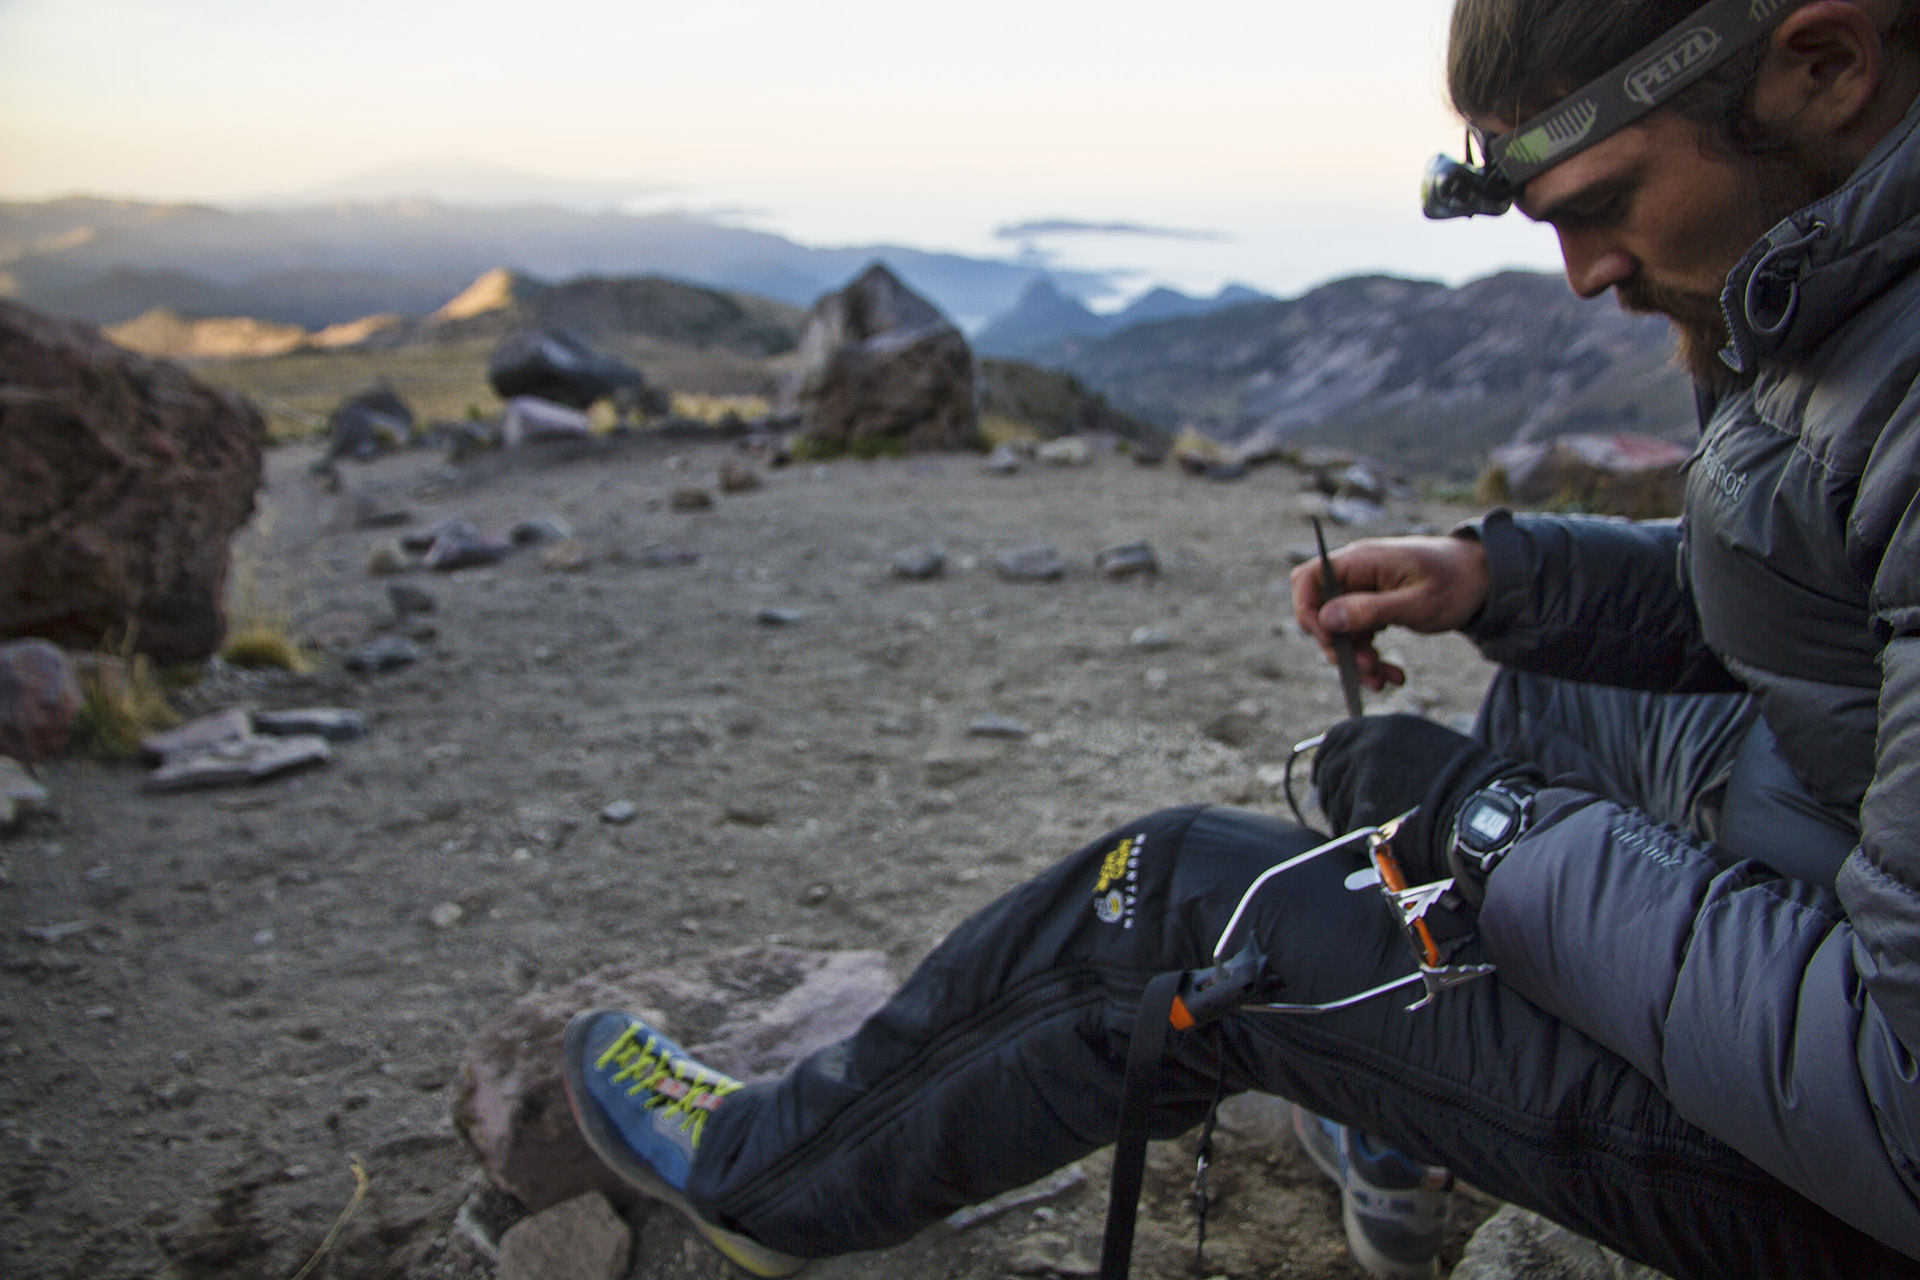 The evening is spent preparing gear for the summit push.